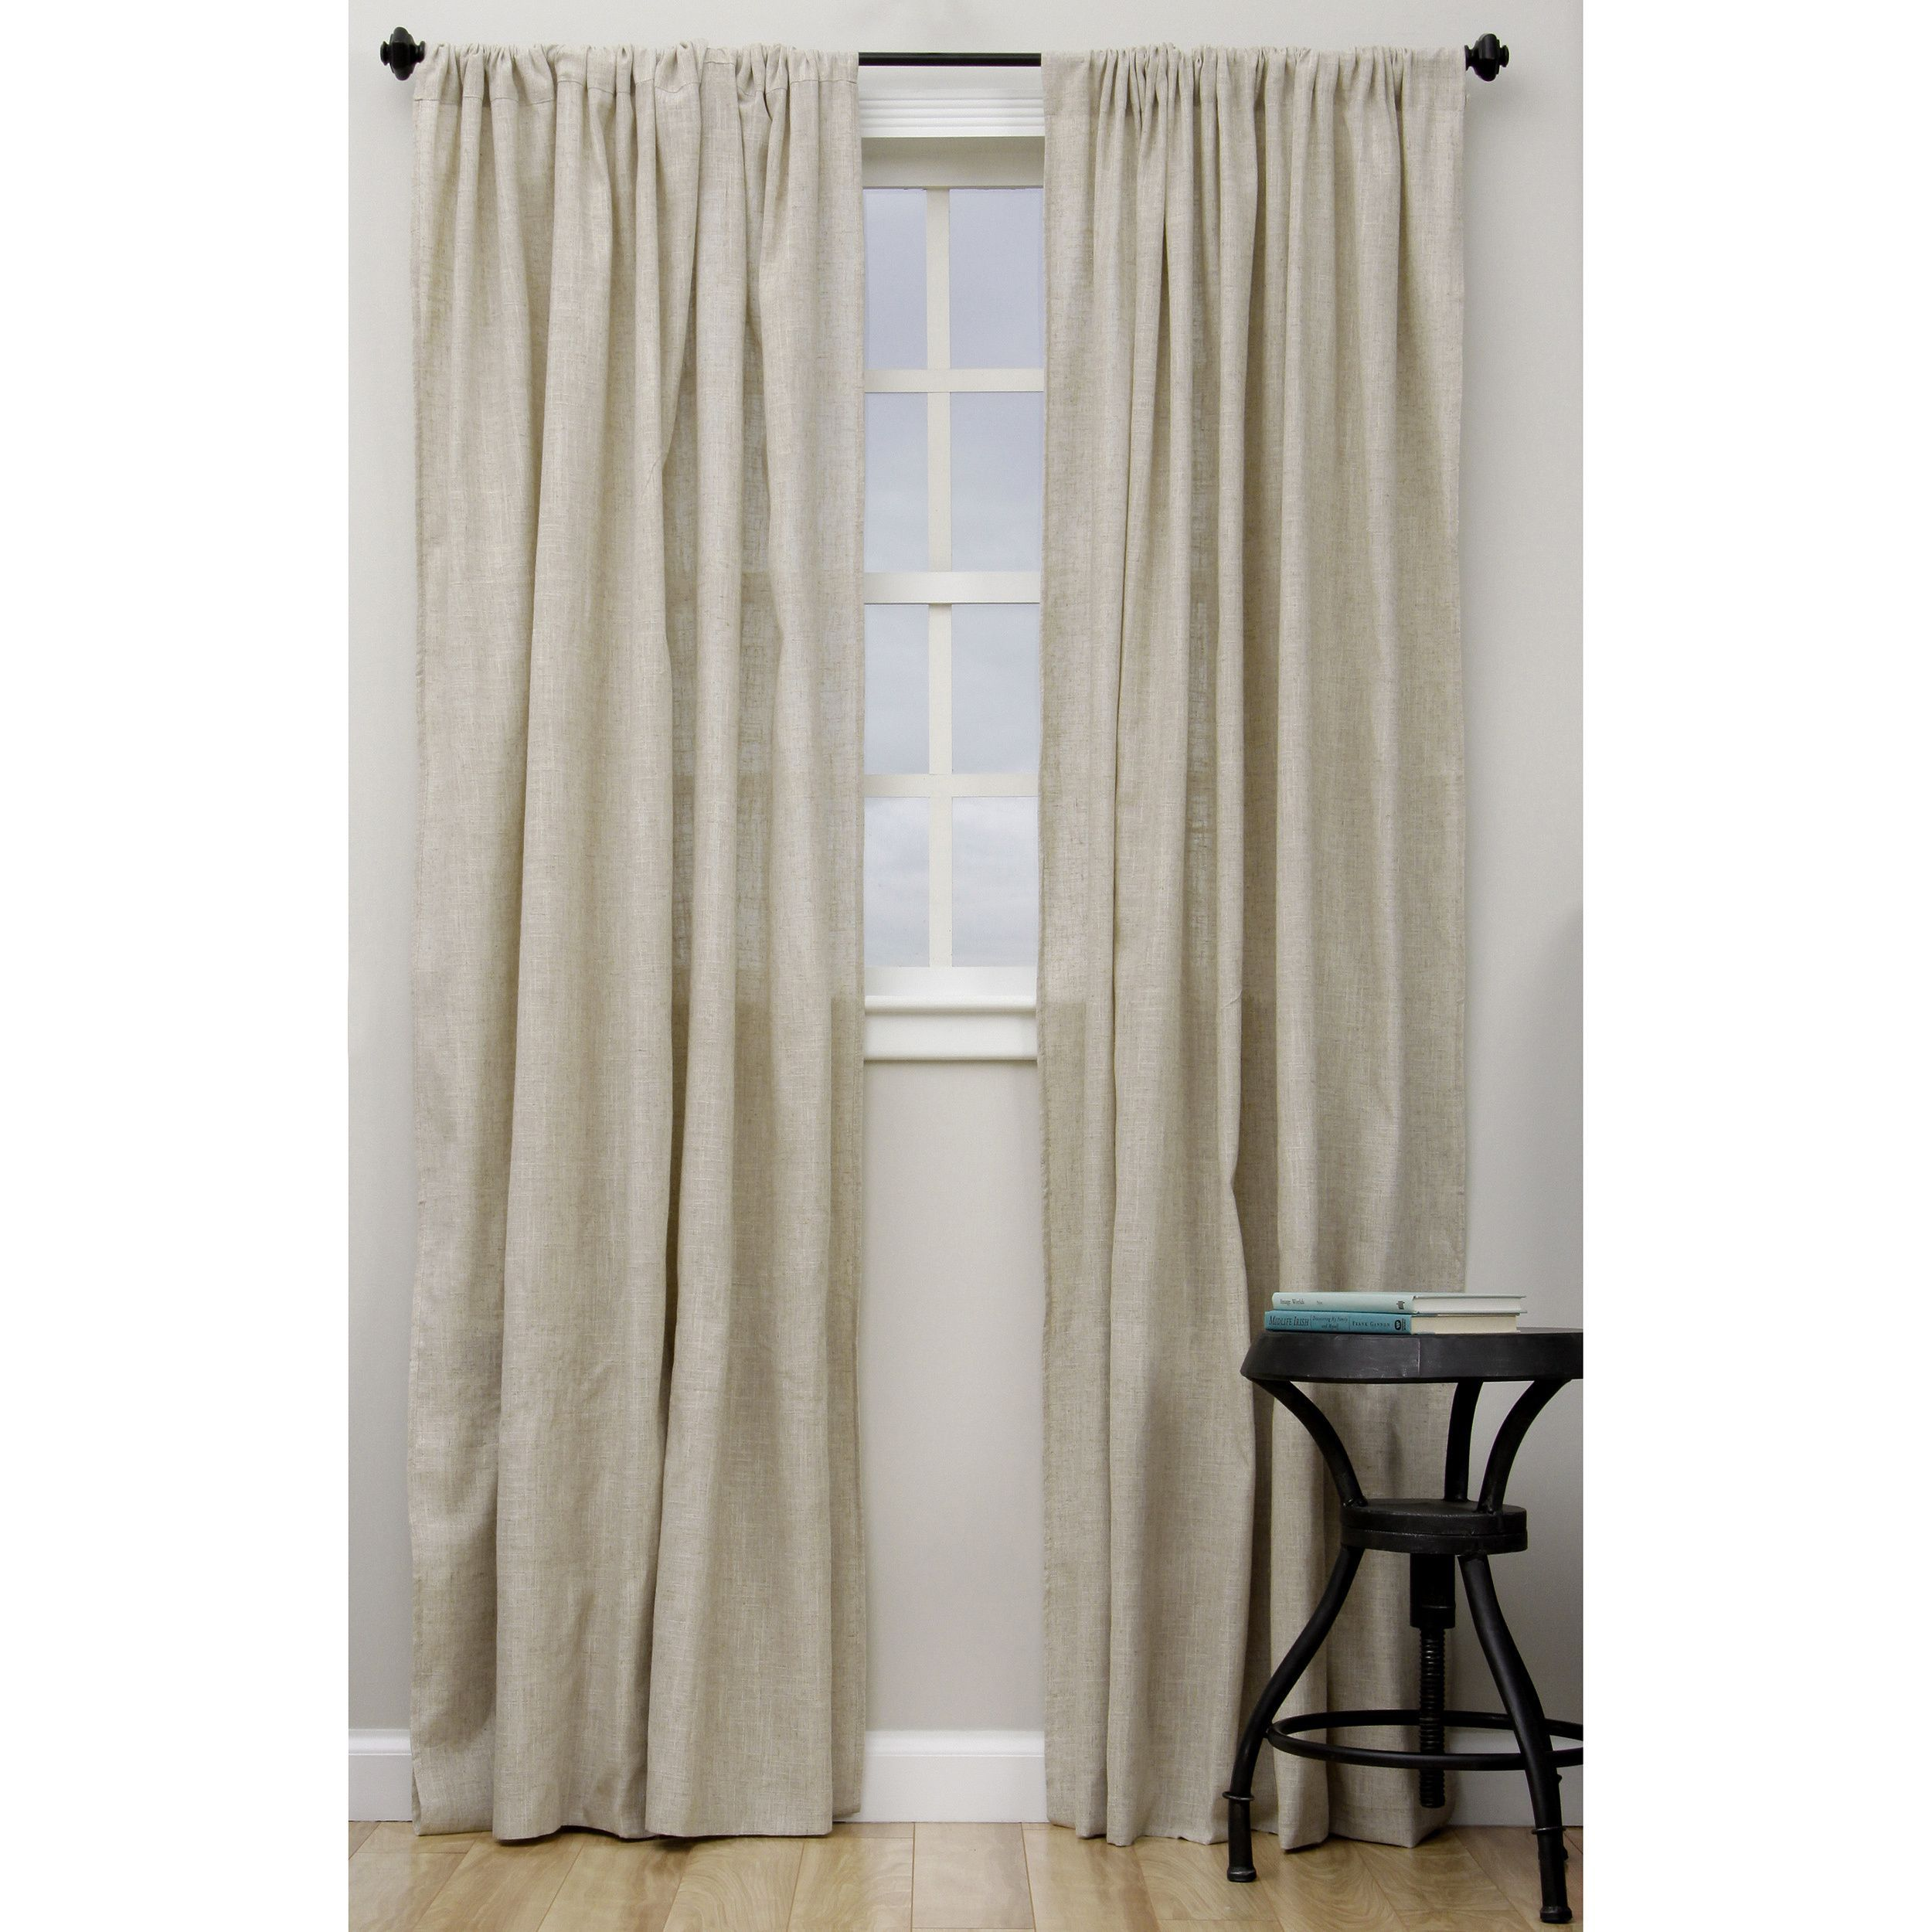 This Classic Hemsched Curtain Panel Will Bring Elegance To Any Room A Perfect Way